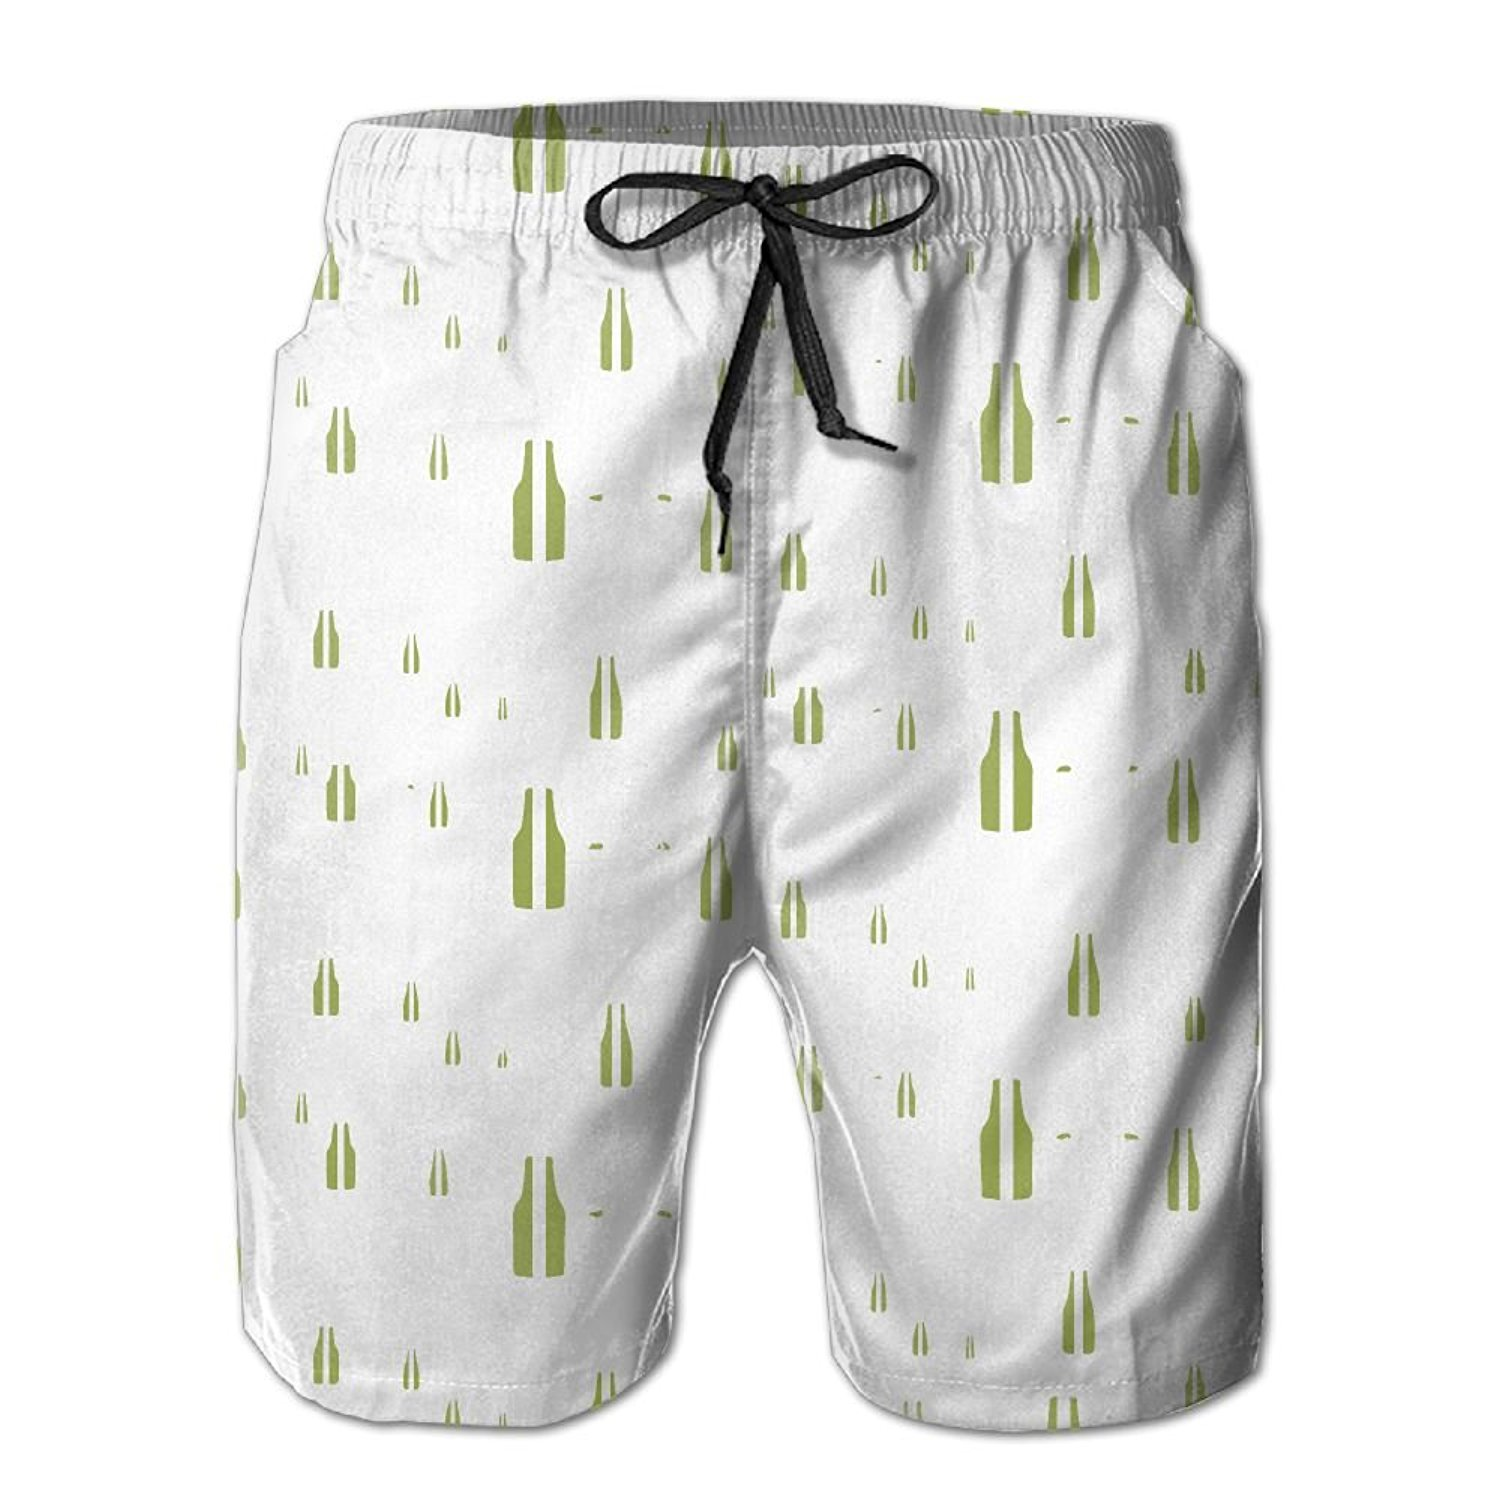 389f66ae2432f Get Quotations · Aini Ronyi Swim Trunk Beach Shorts Beer Bottles Men's  Volley Swim Trunks